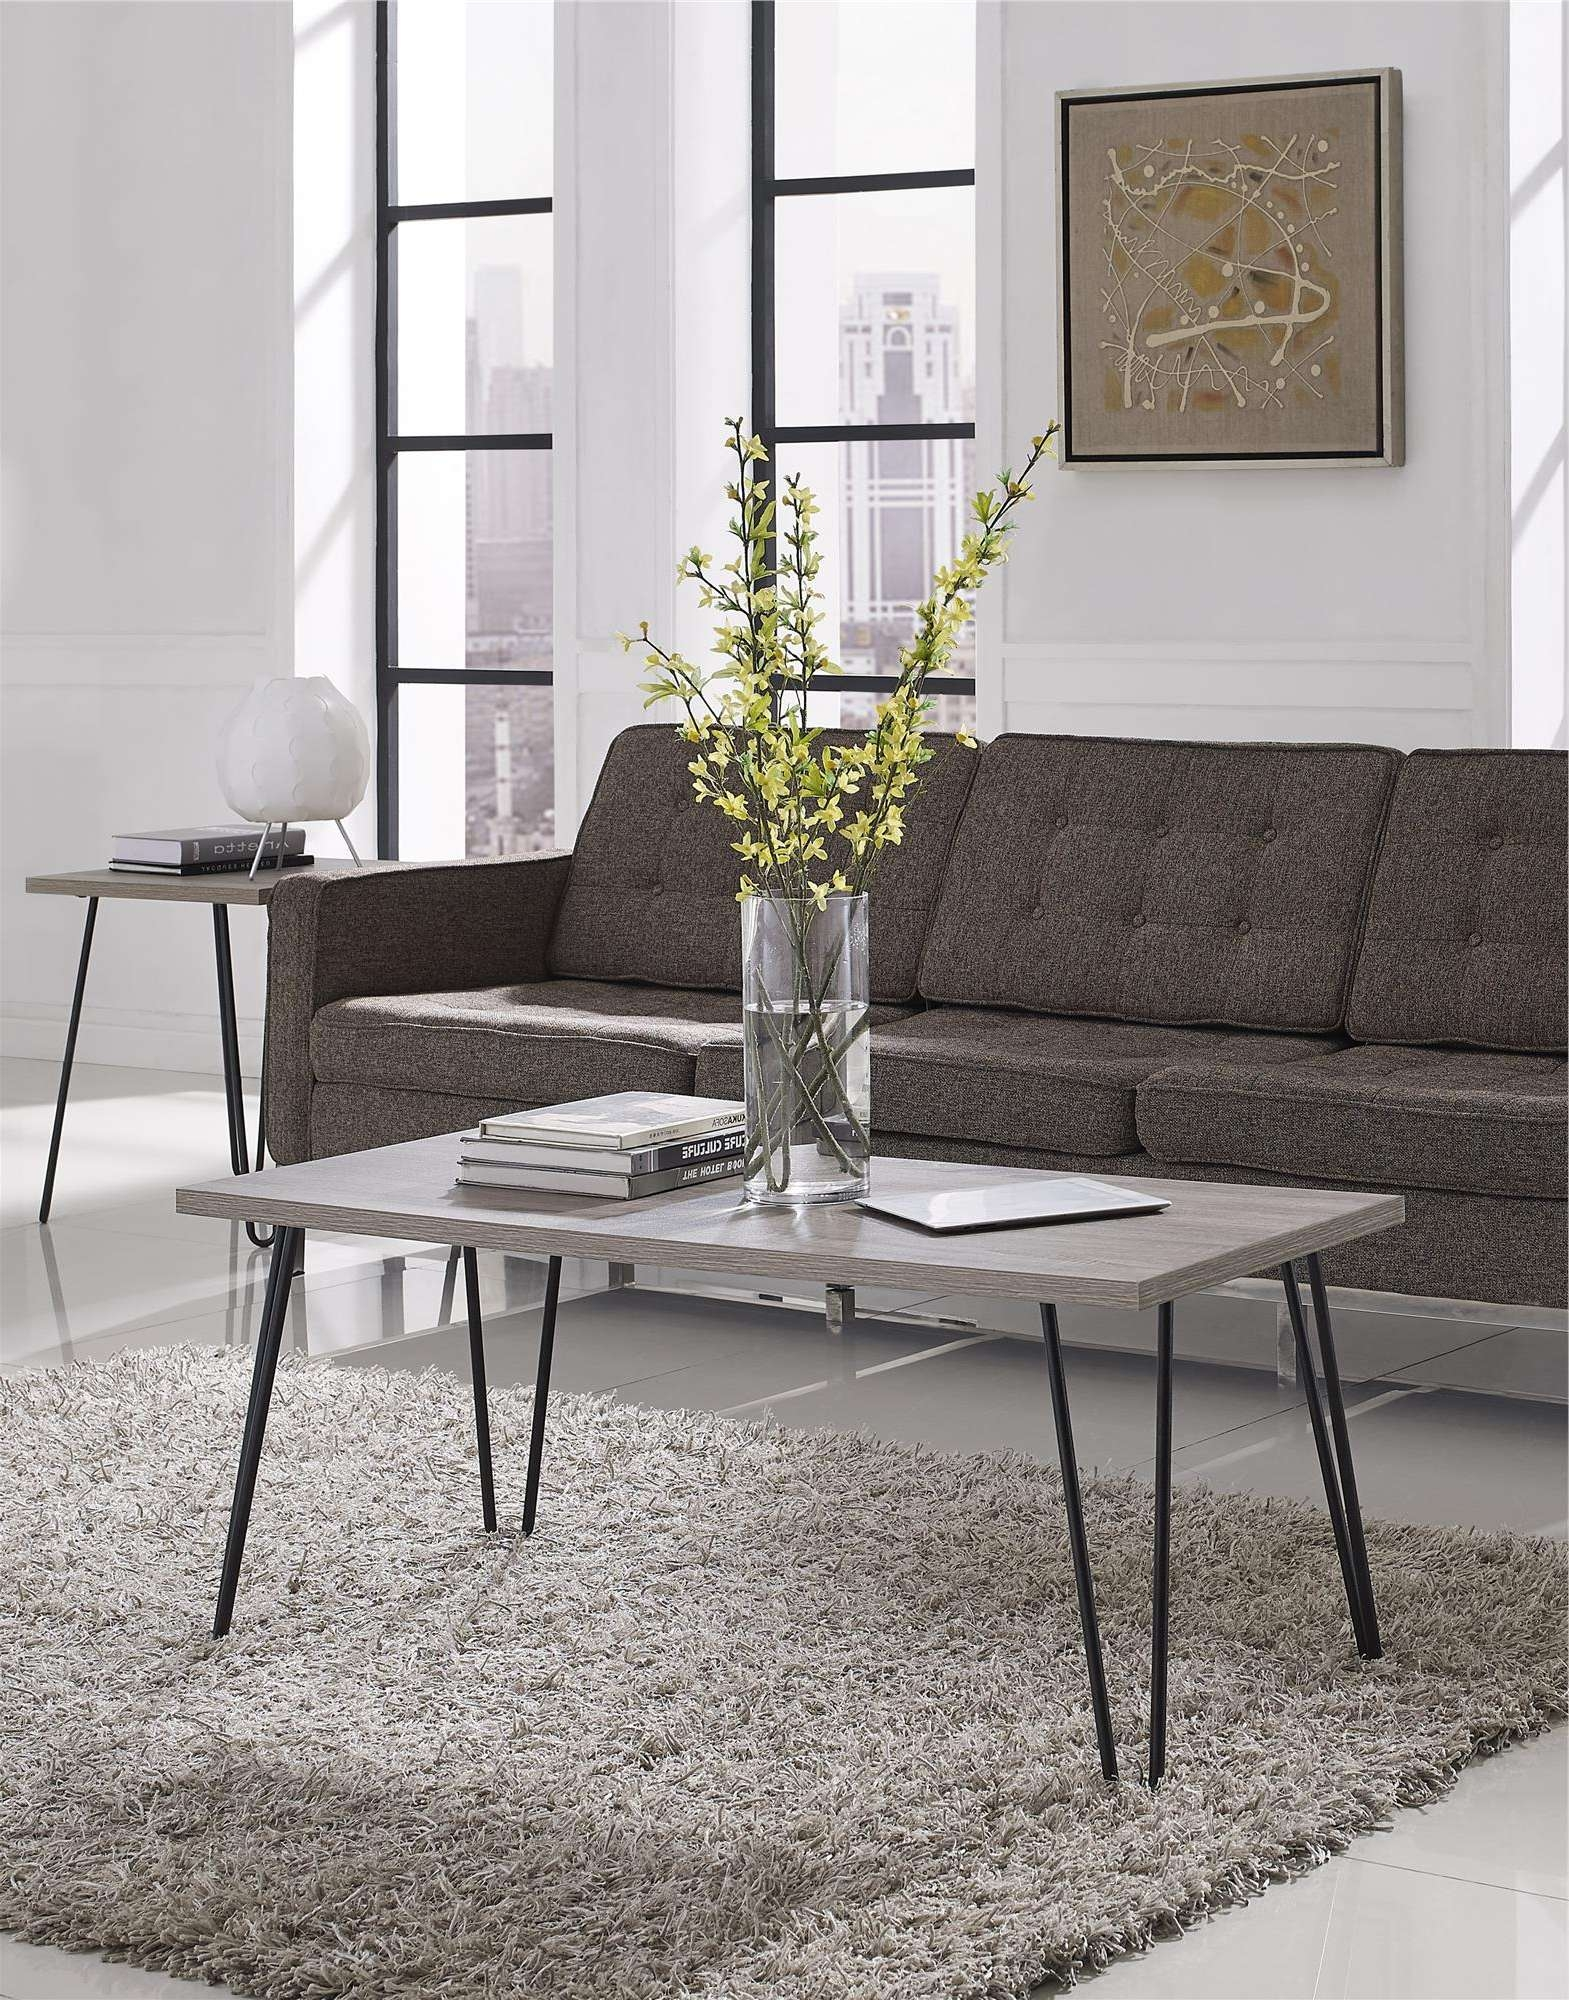 Altra Furniture Owen Retro Coffee Table Inside Most Recently Released Retro Oak Coffee Tables (Gallery 3 of 20)